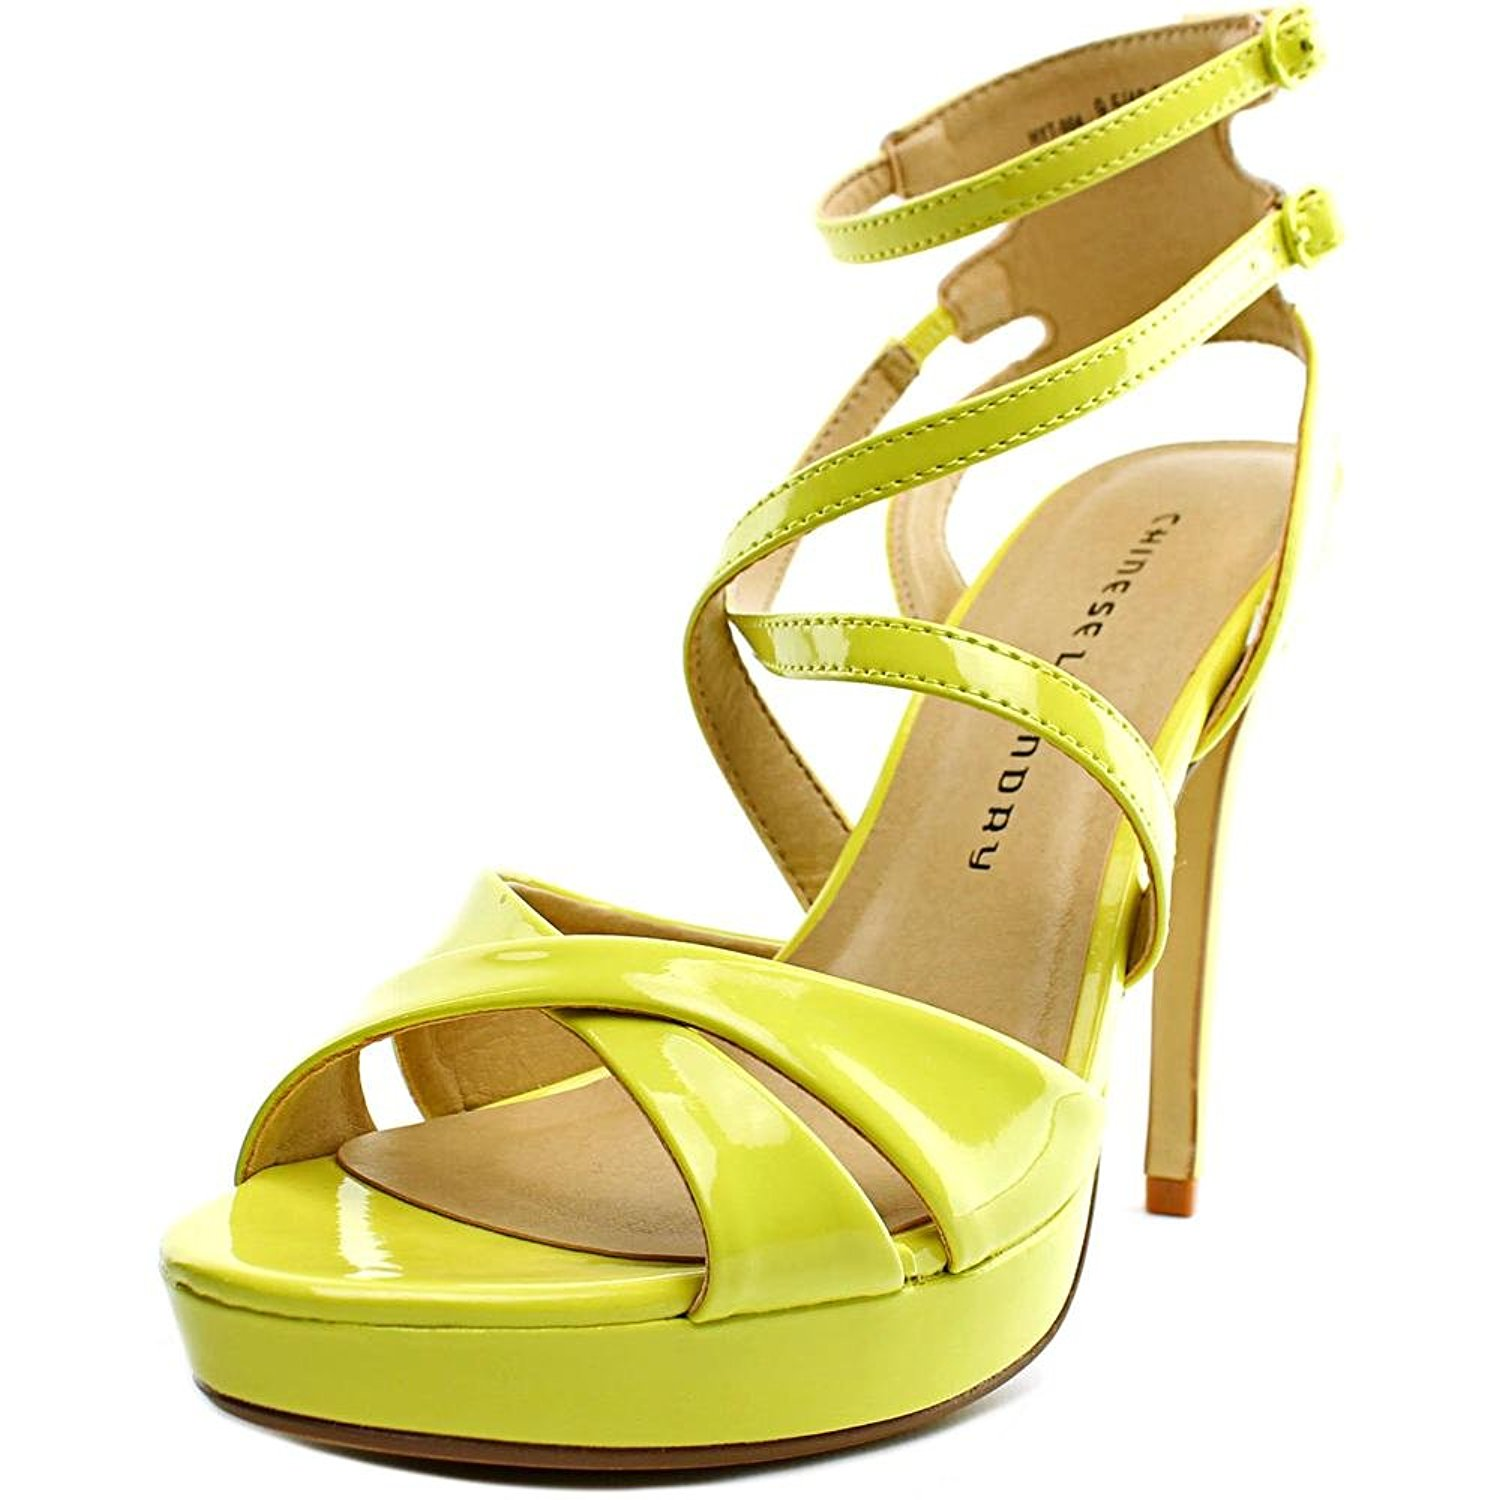 Chinese Laundry Womens HIghlight Open Toe Ankle Strap Platform Lemon Size 8.5